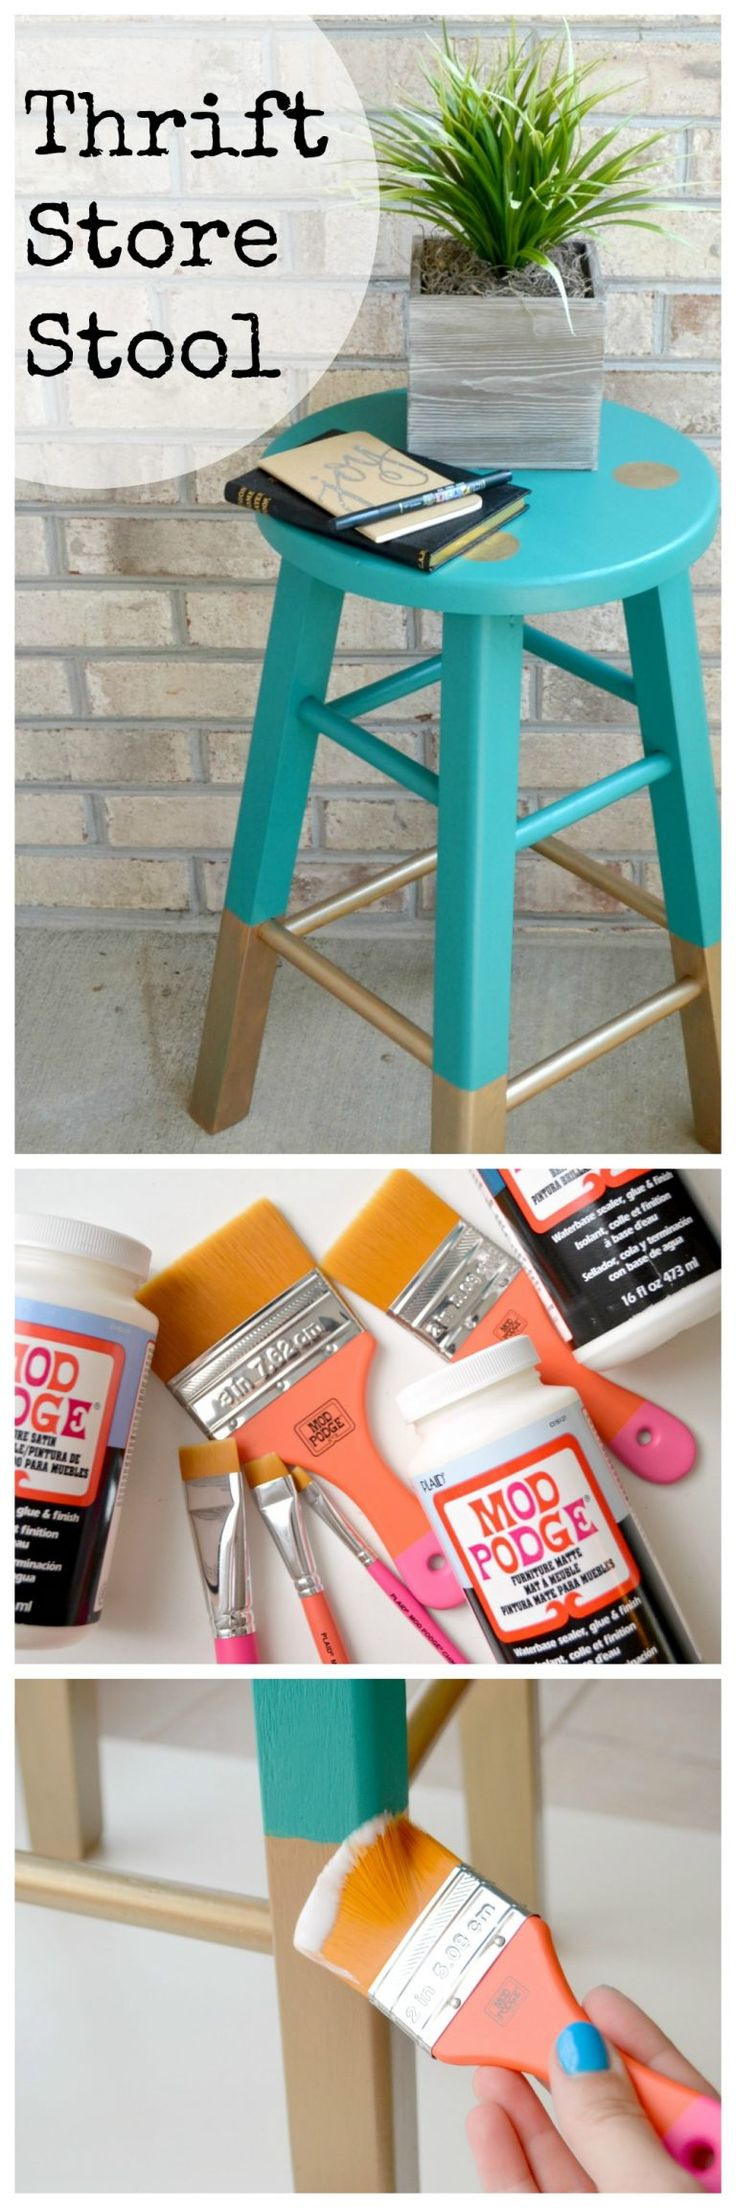 THRIFT STORE CHALLENGE: BABANEES INSPIRED PAINTED STOOL in Teal and Gold. What a great upcycle!